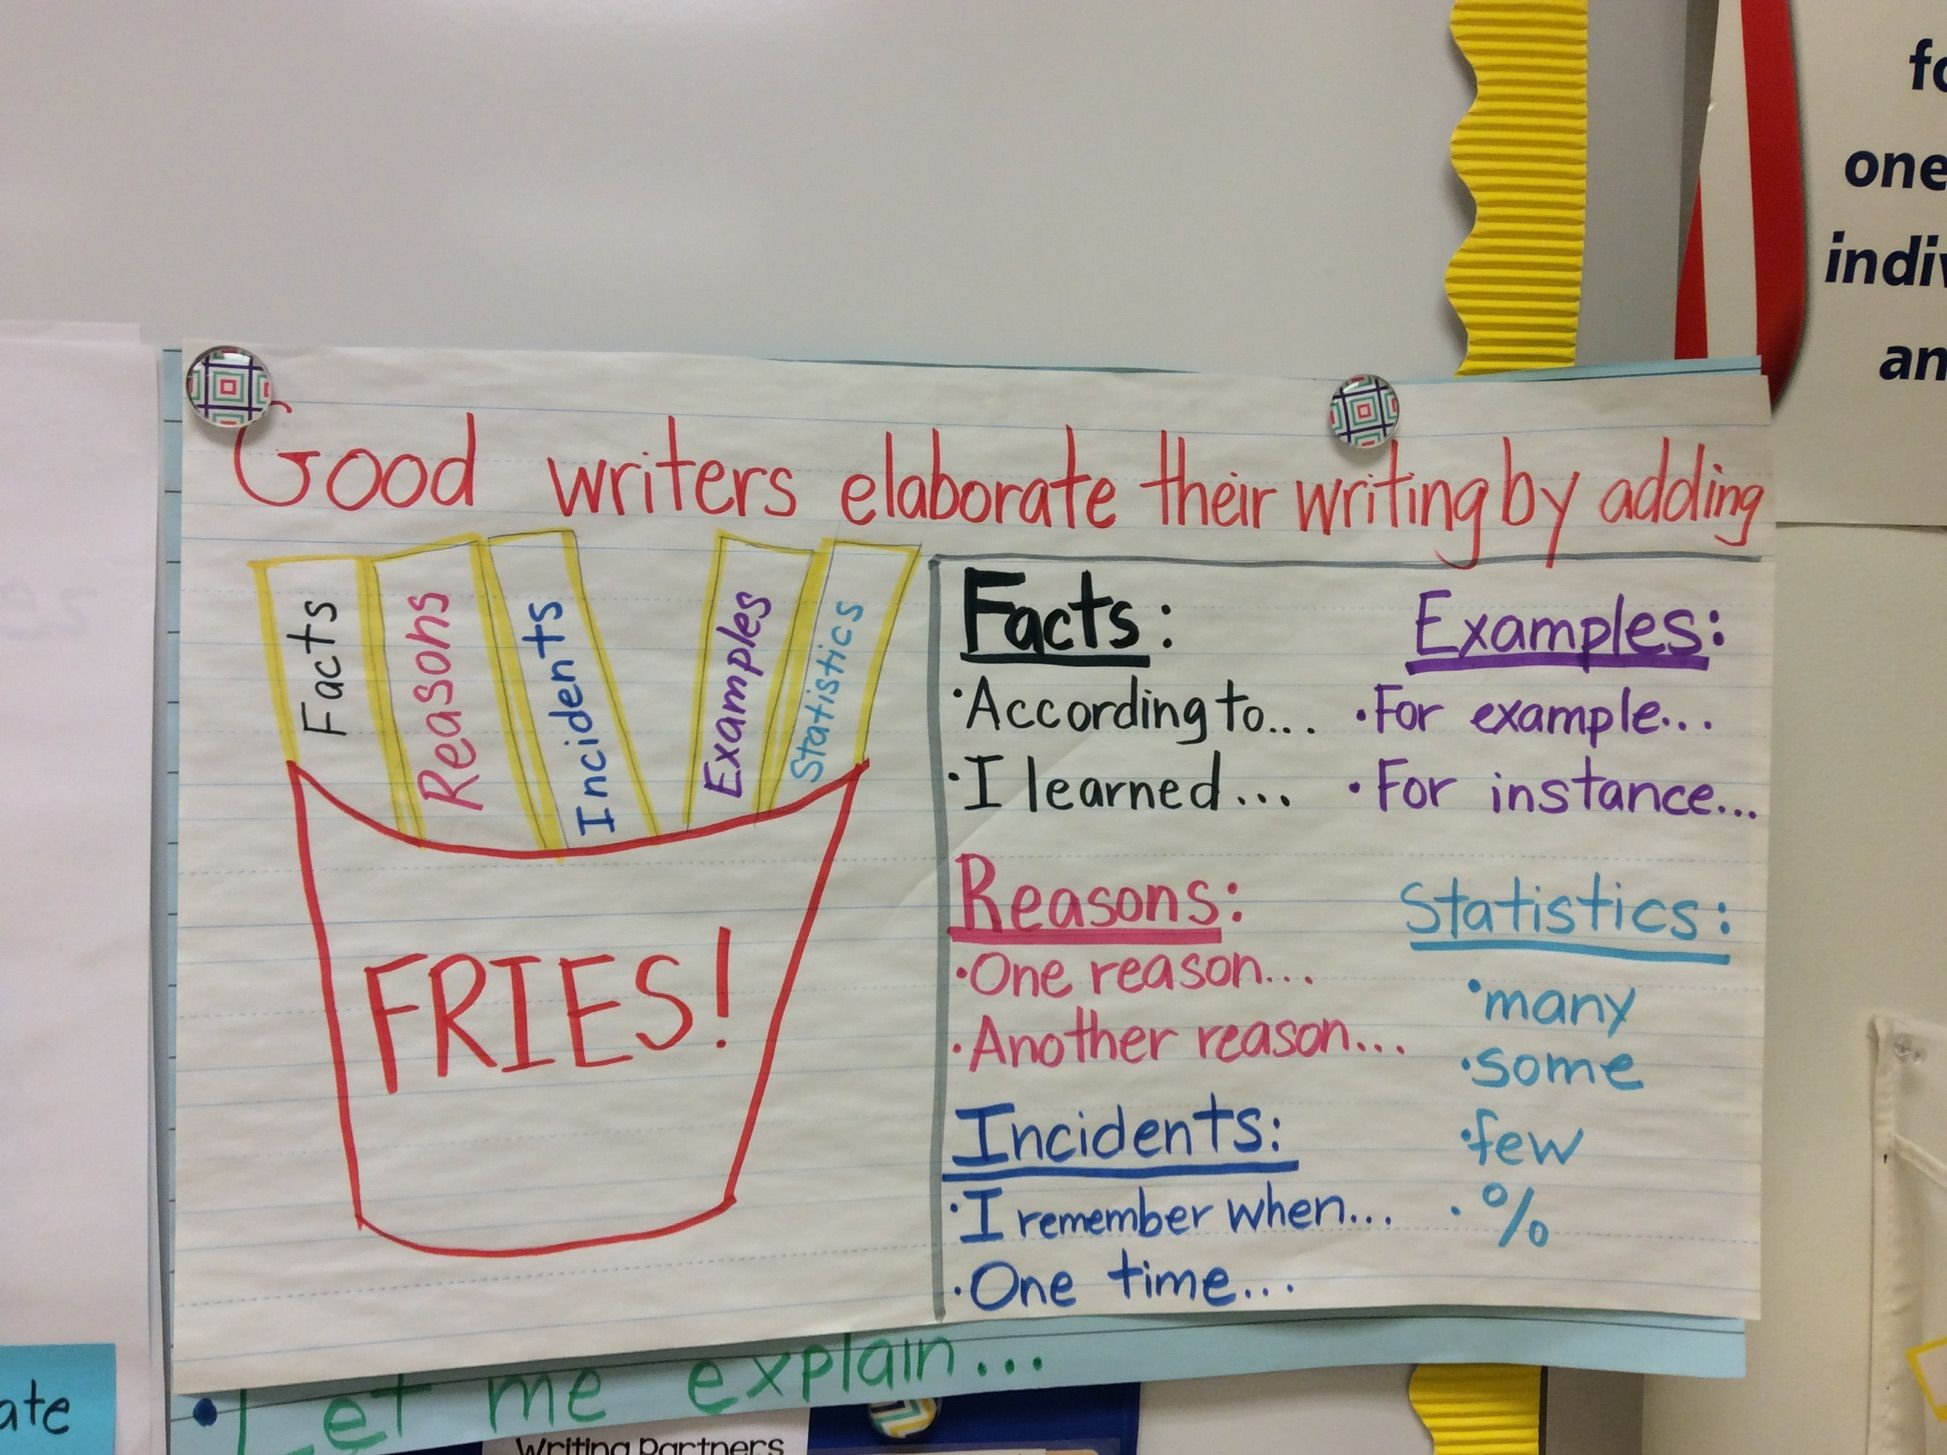 Elaborate On Your Writing By Adding Fries Facts Reasons Incidents Examples Statistics Franquinh 4th Grade Writing Teaching Ela Speech And Language